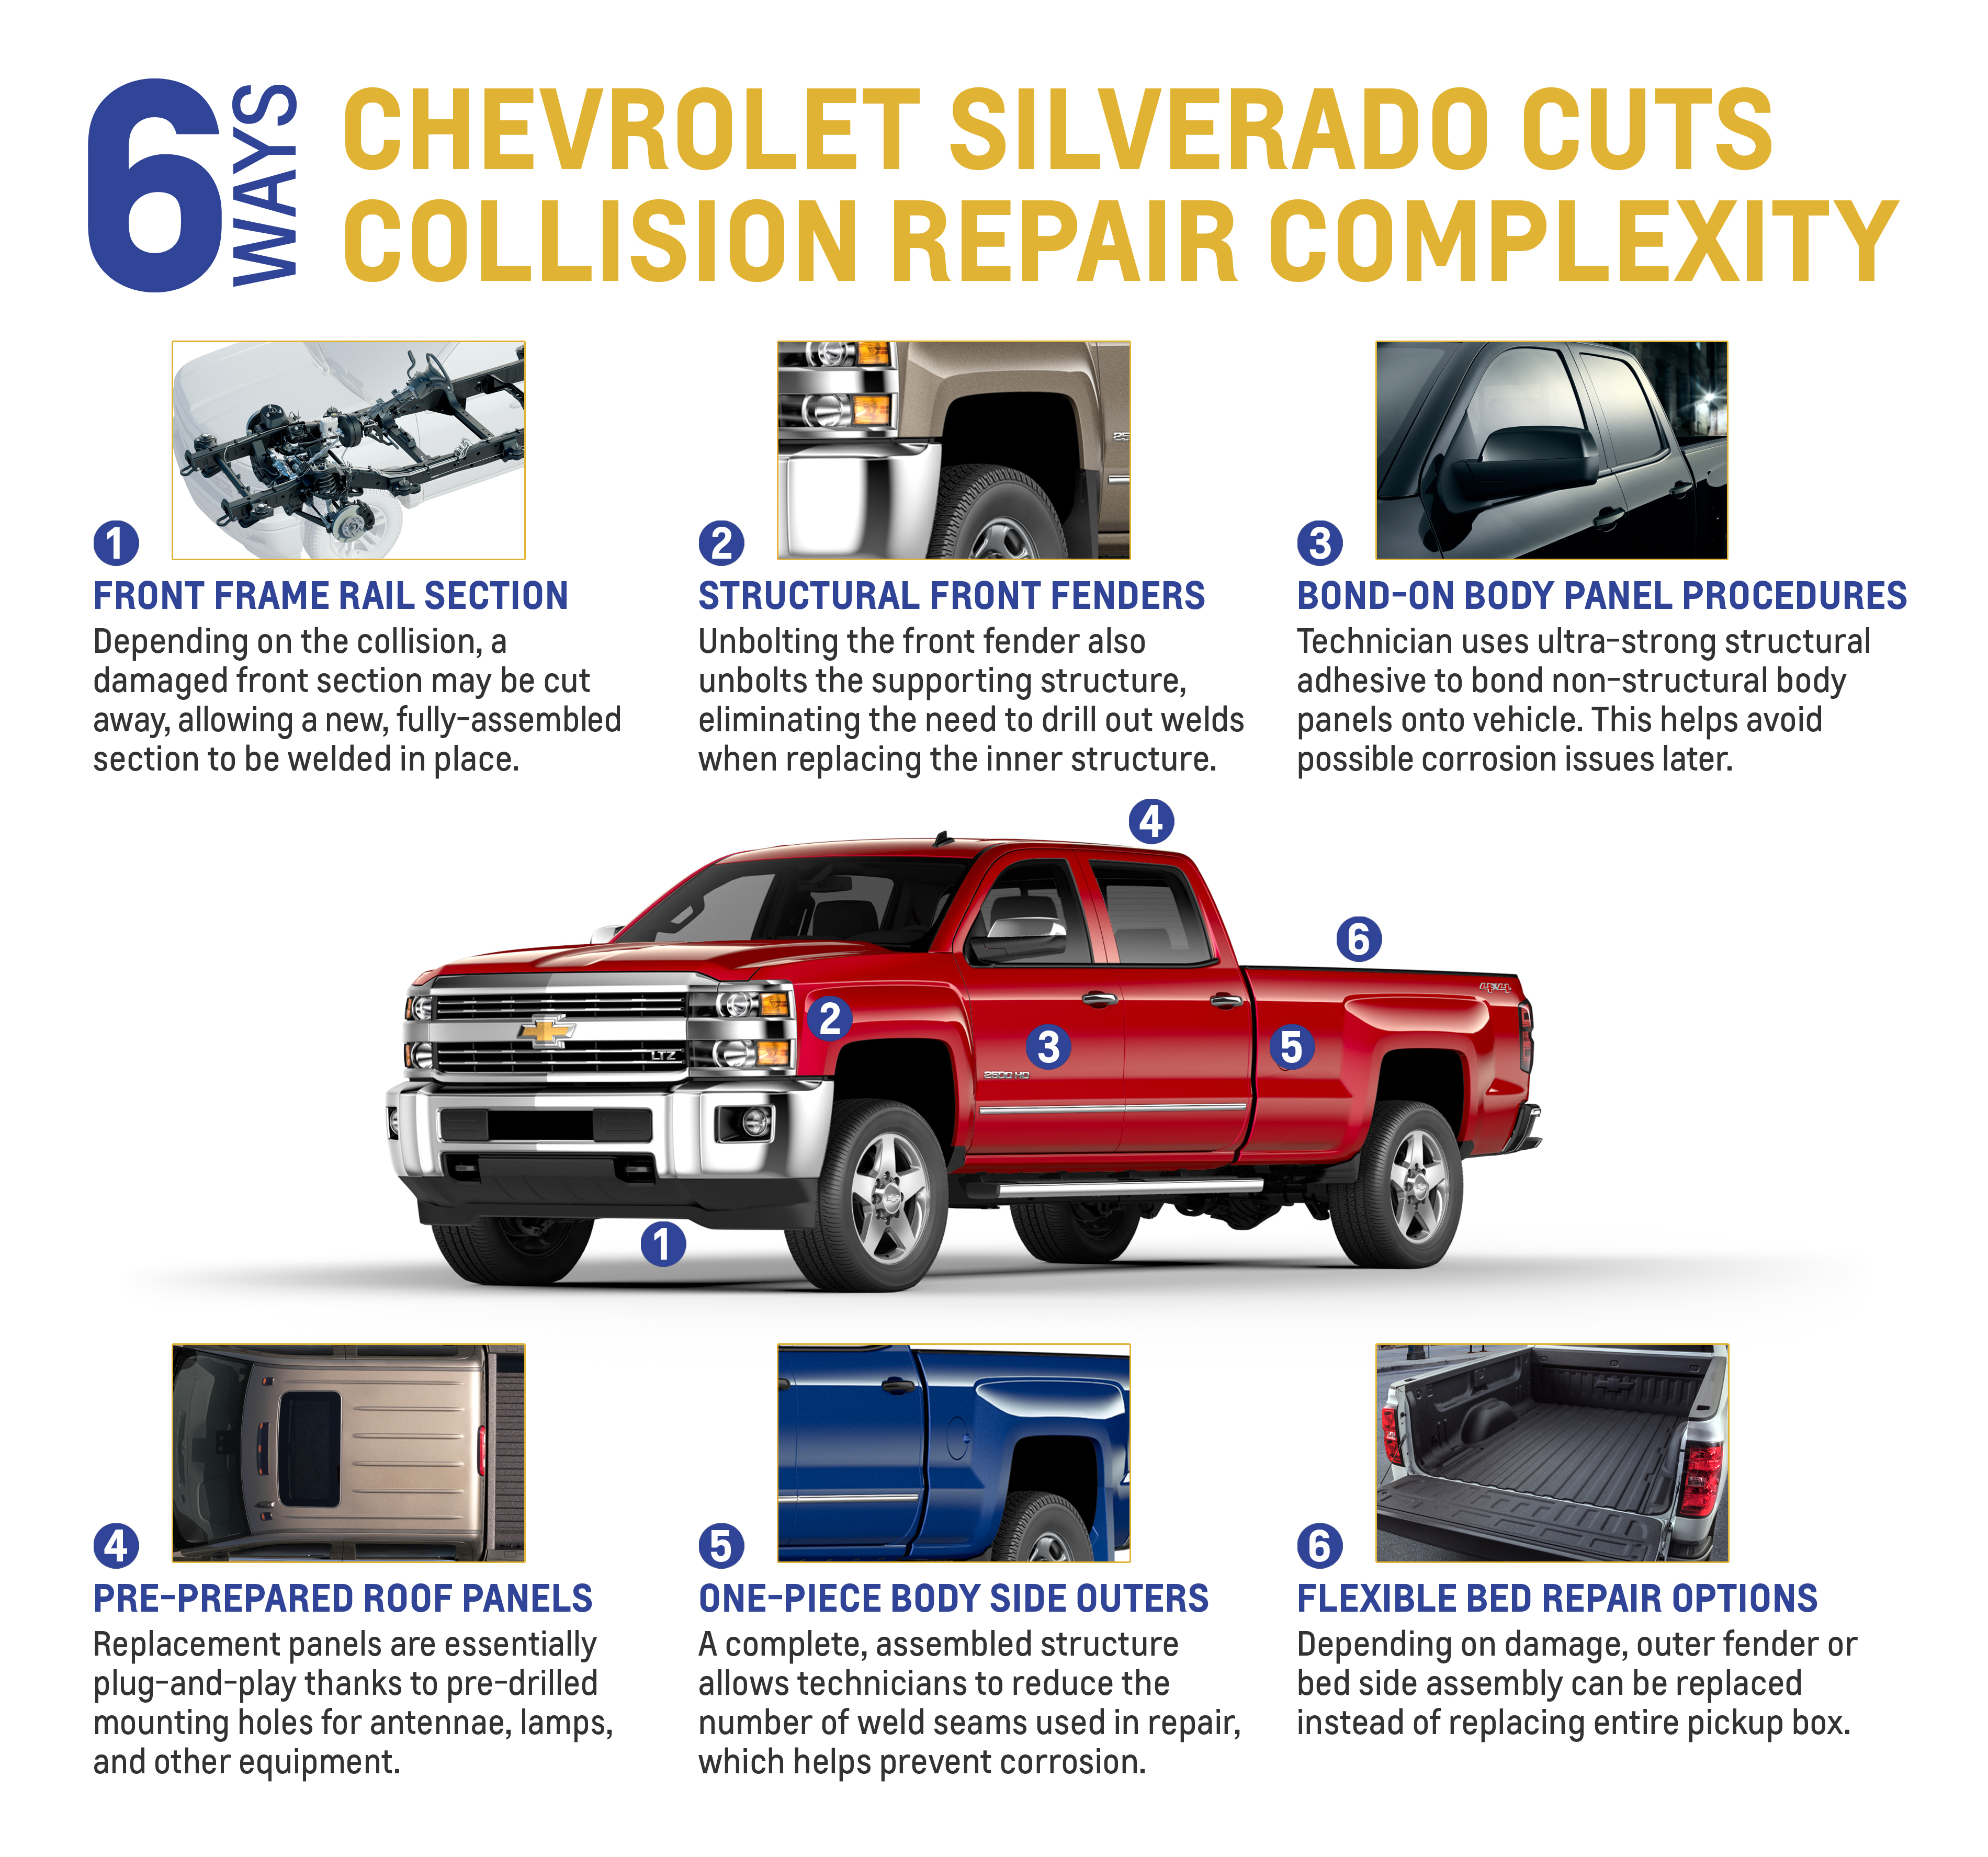 Chevy silverado years to avoid